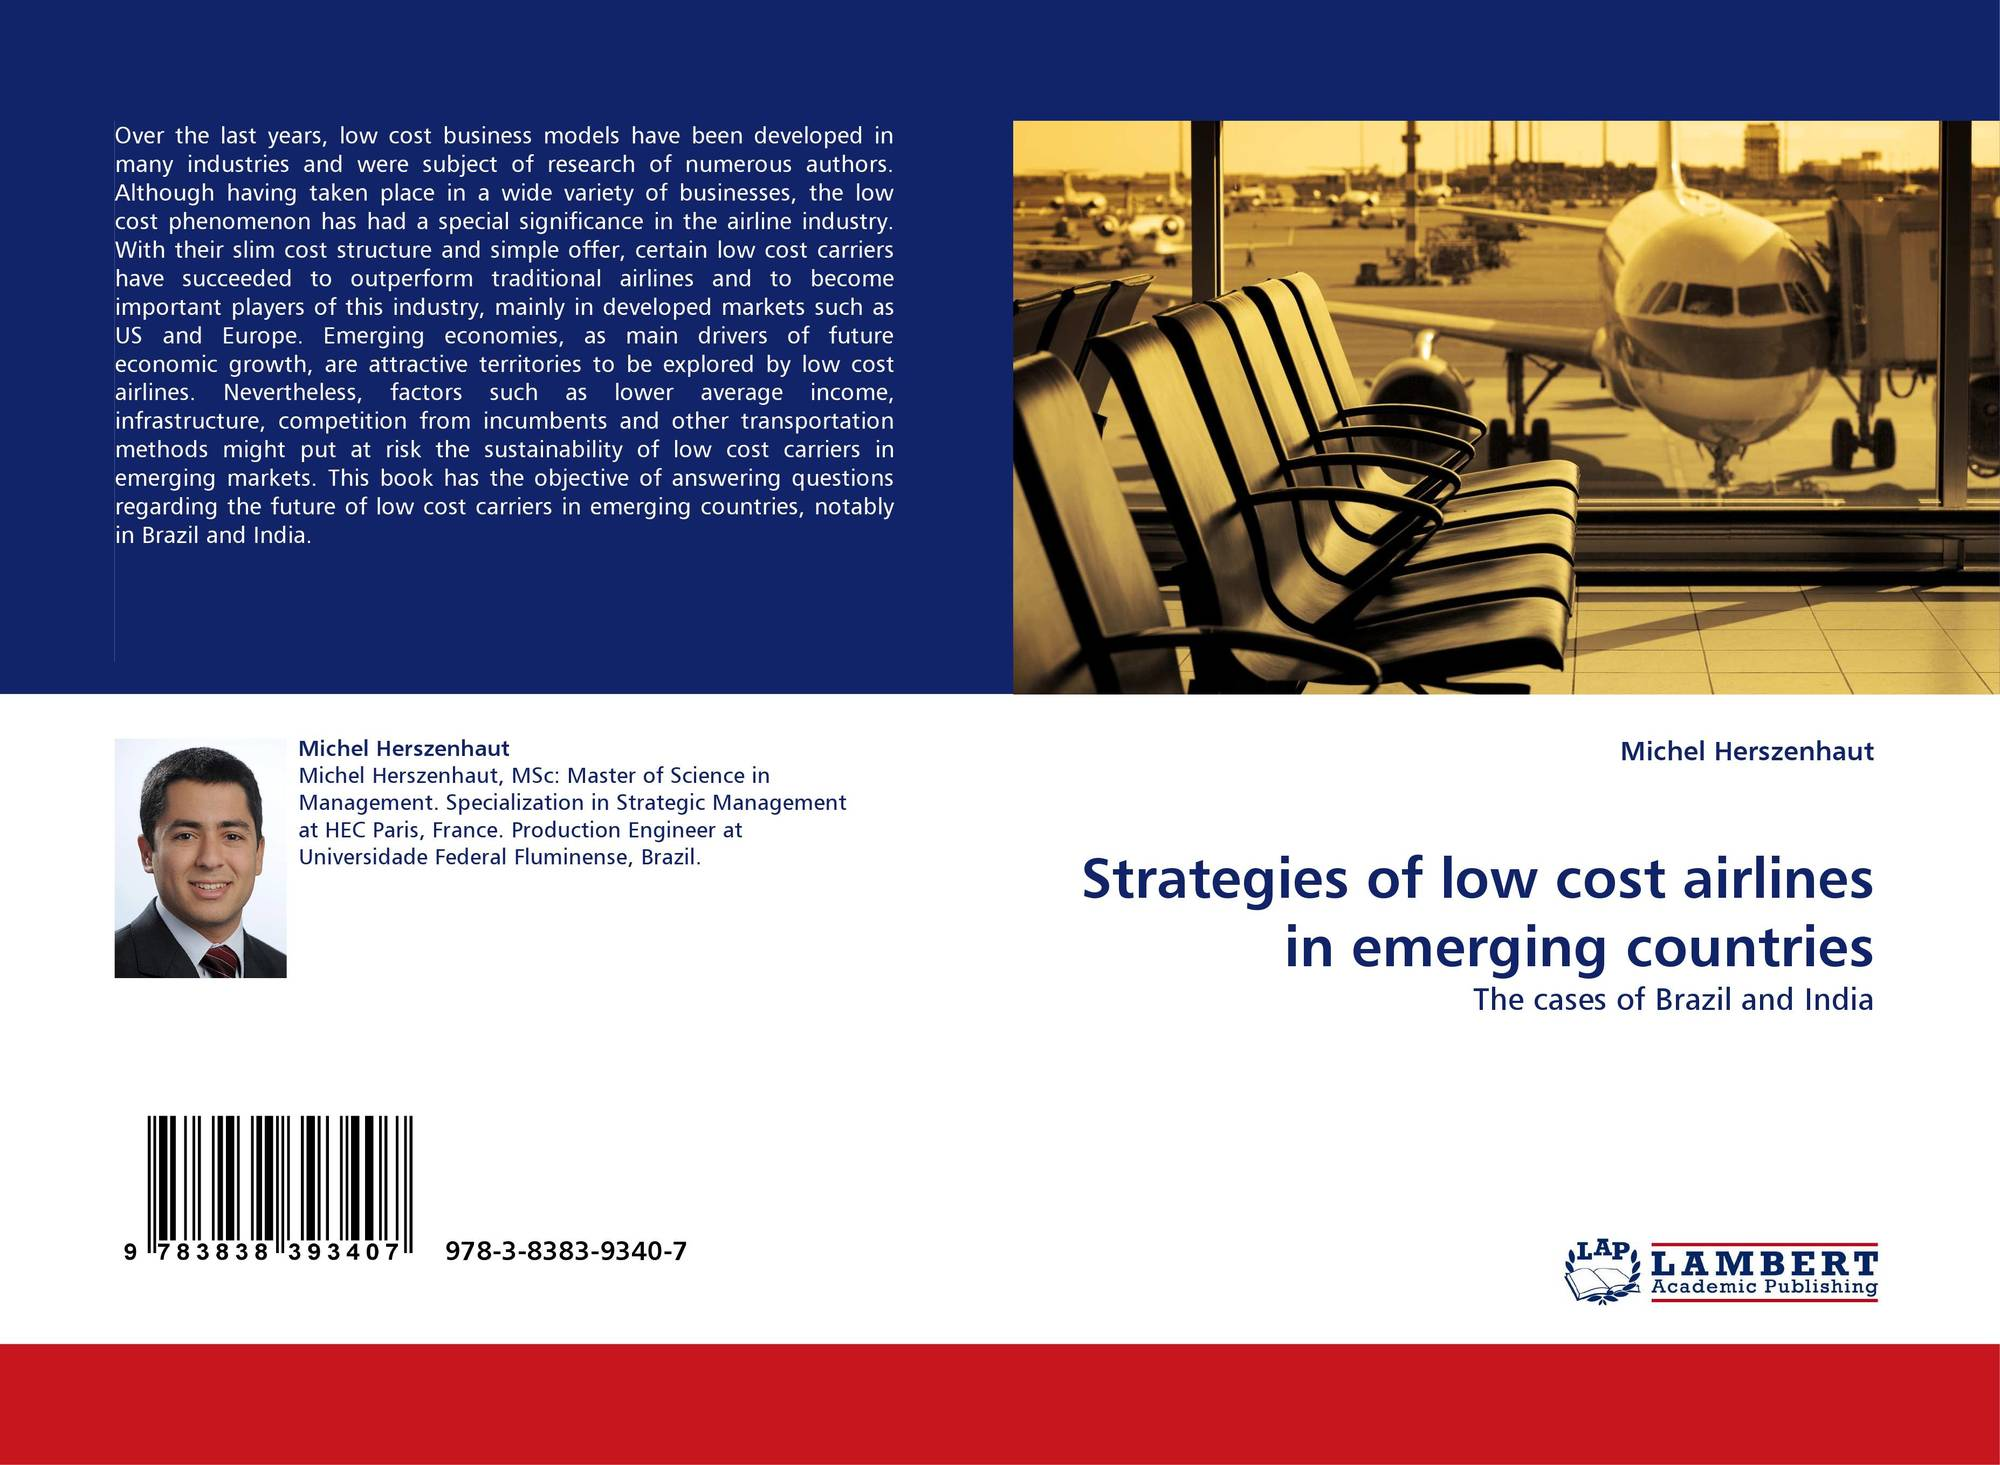 competitive strategy for low cost airlines